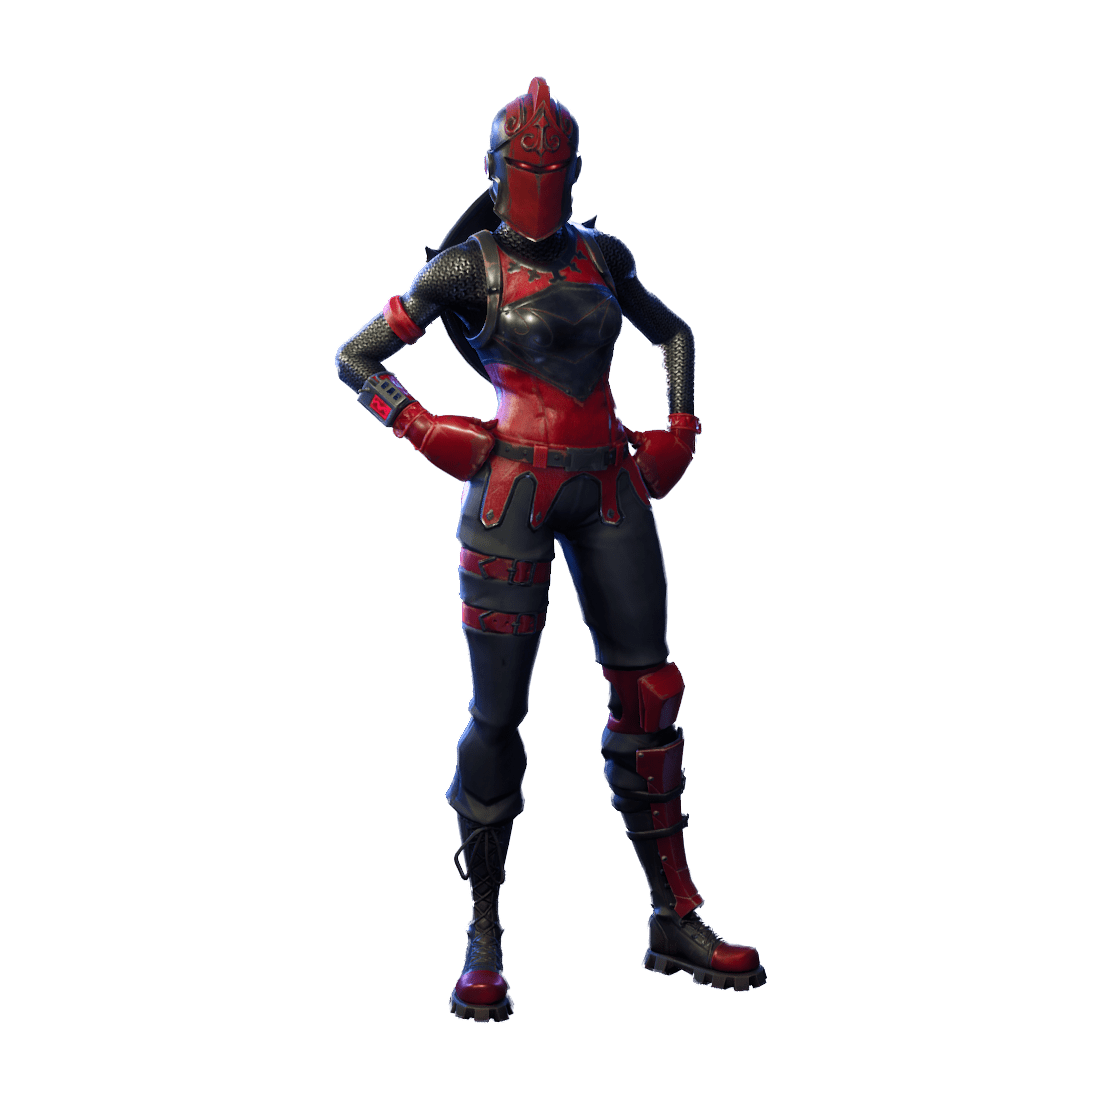 Fortnite Red Knight Outfits   Fortnite Skins 1100x1100